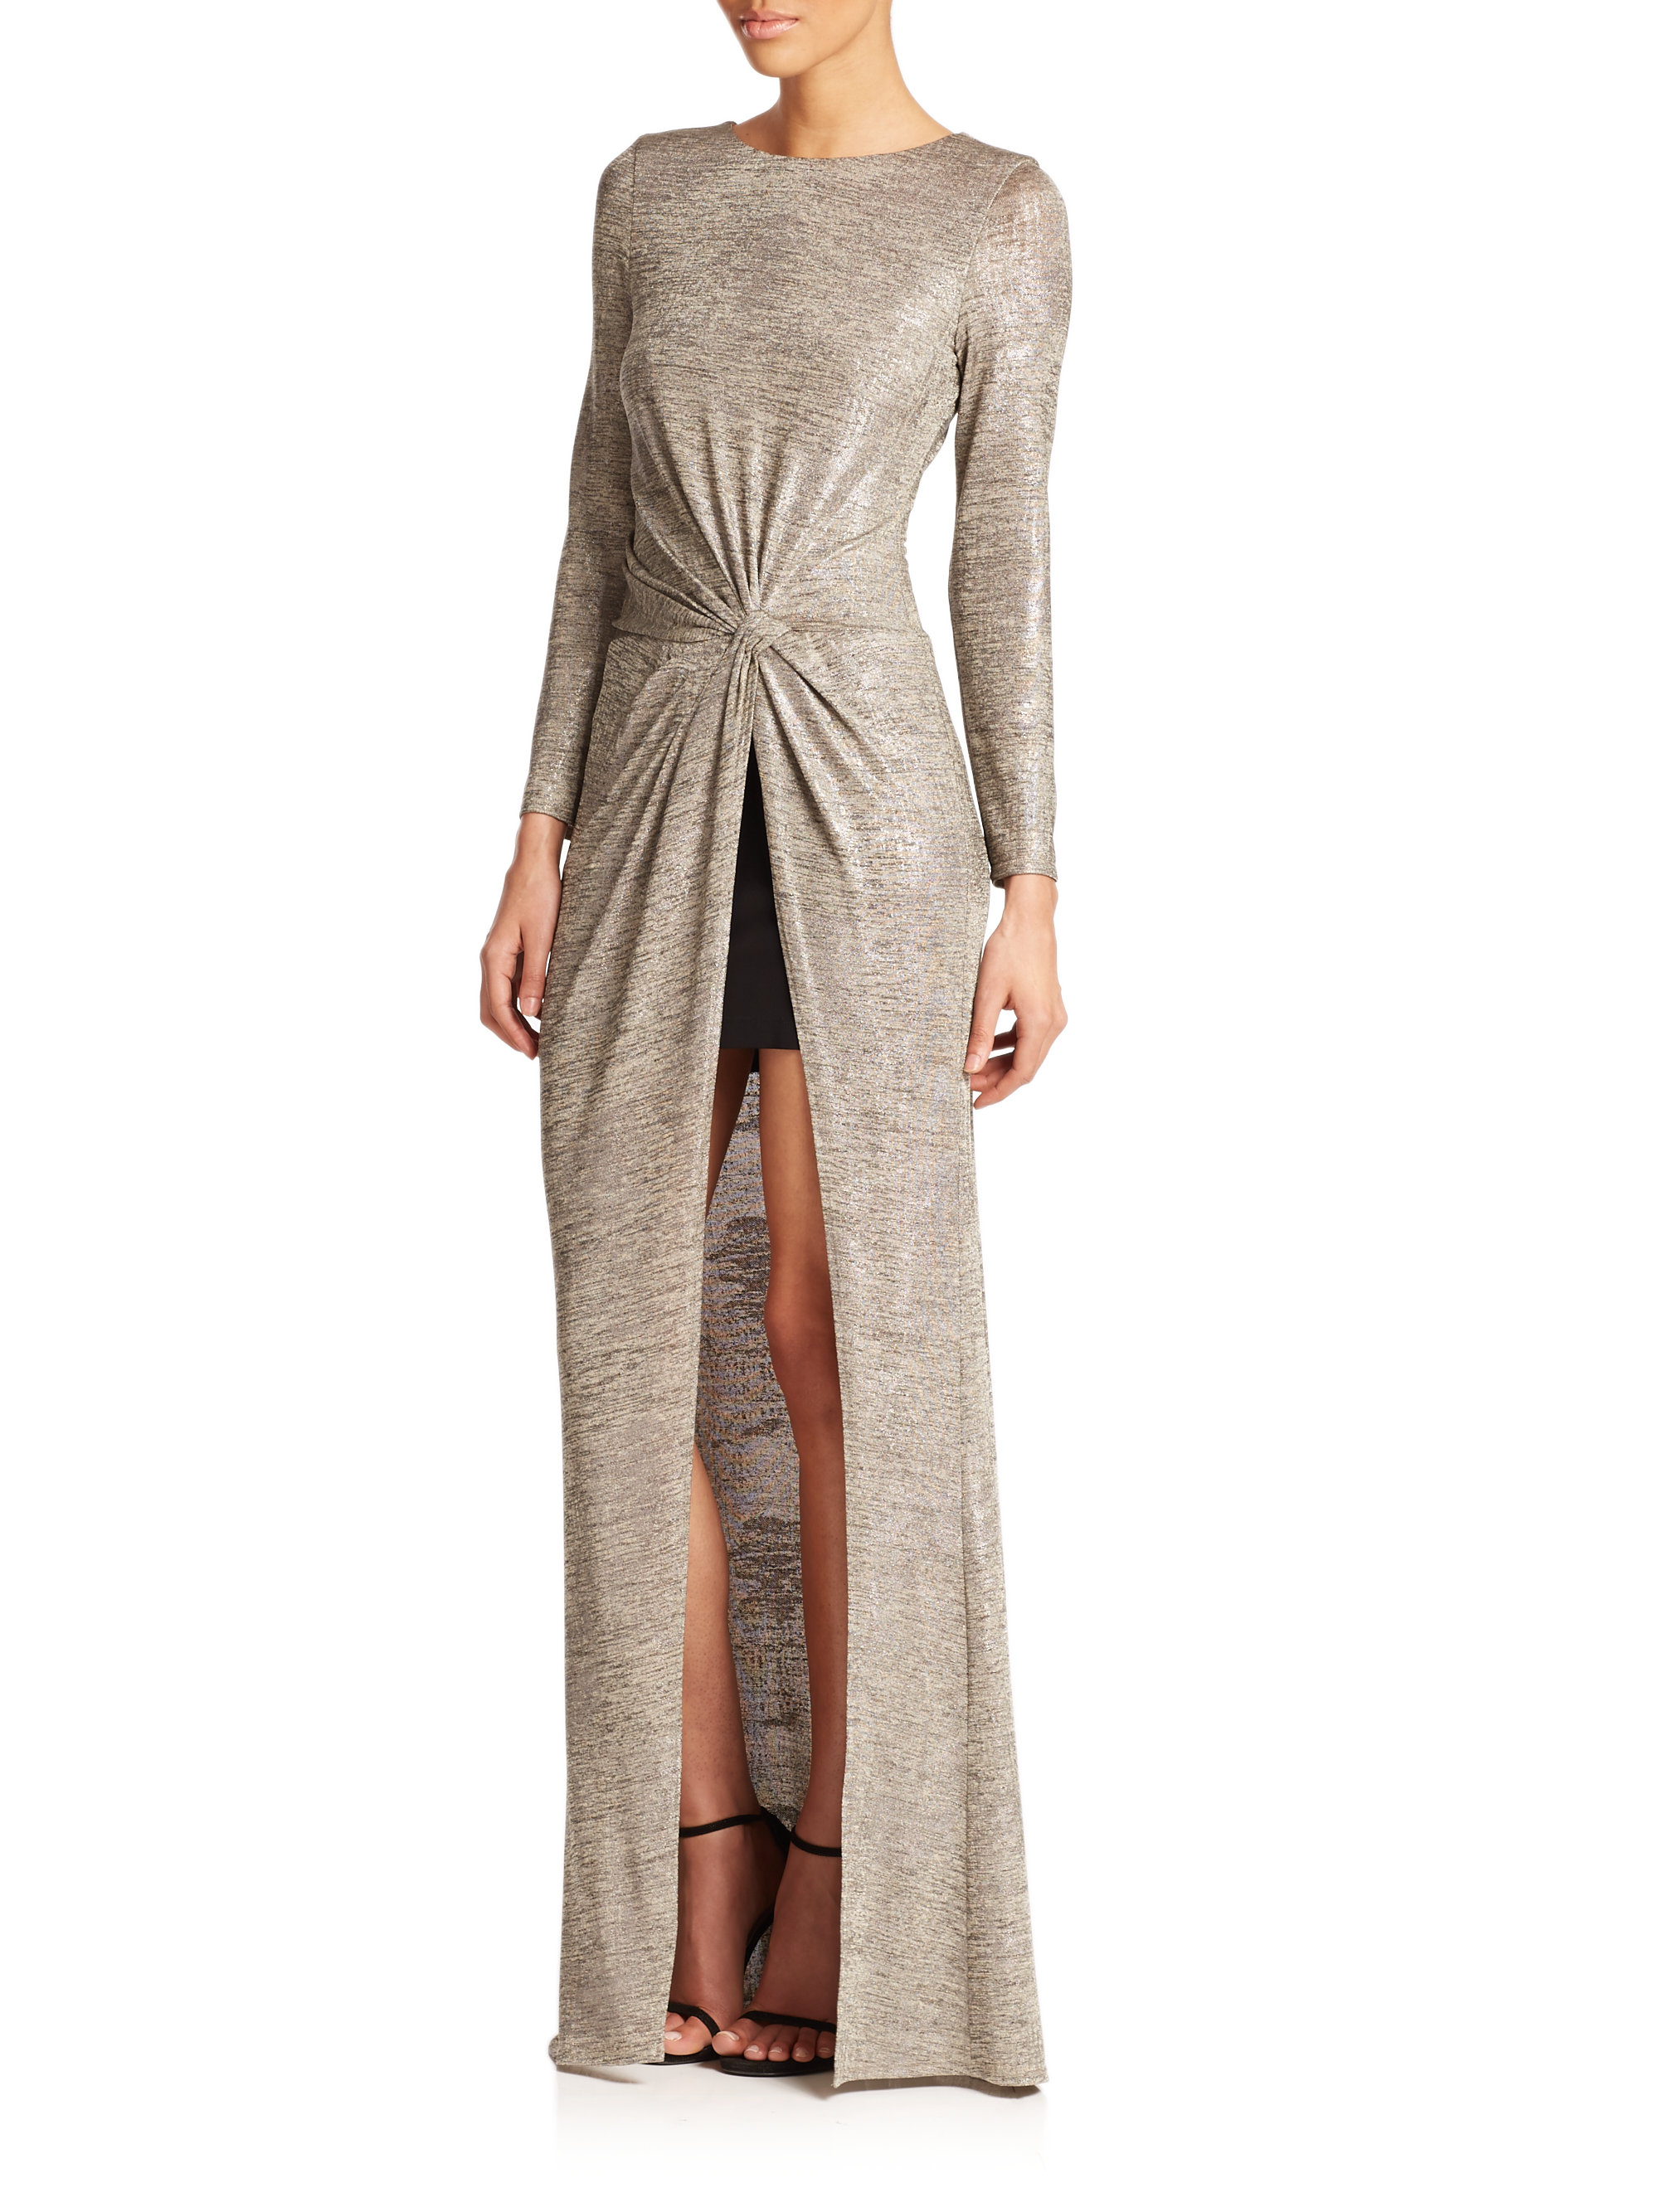 Lyst - Abs By Allen Schwartz Draped Front-slit Gown in Gray